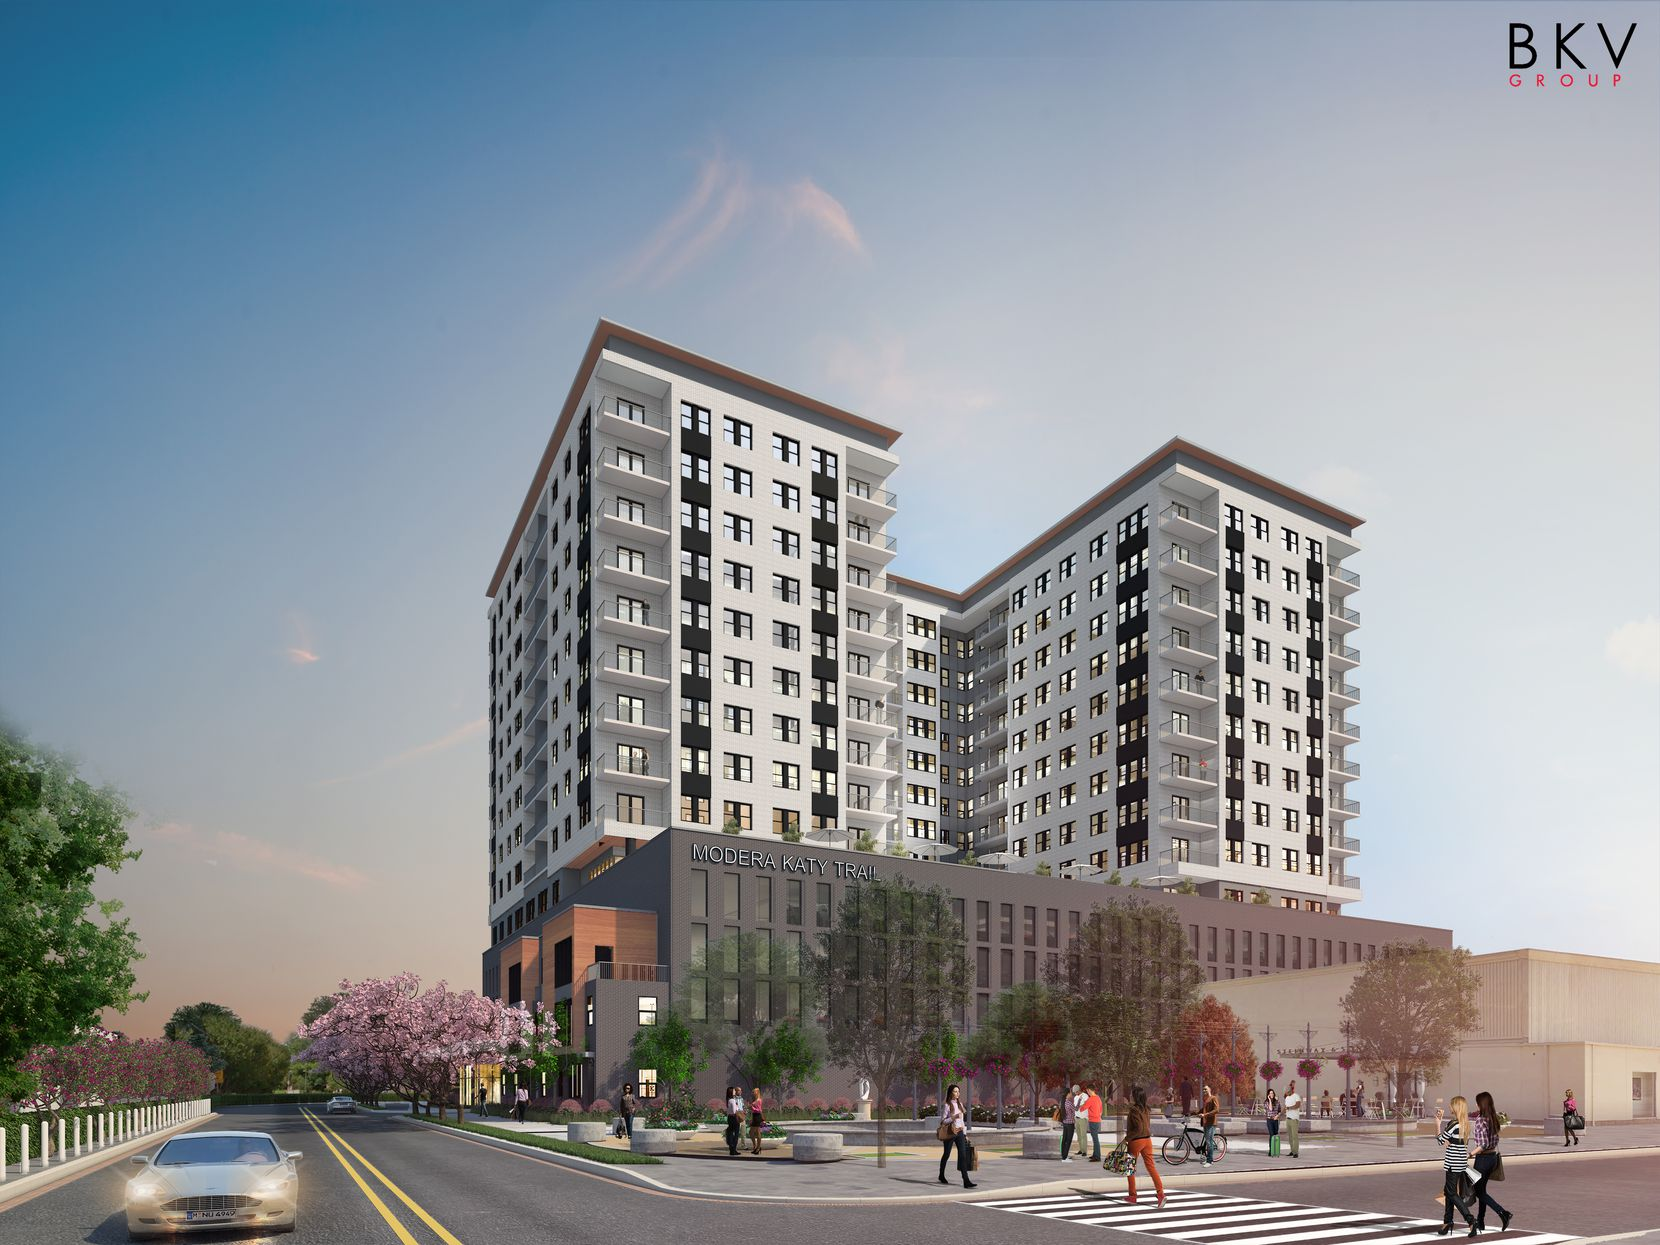 Mill Creek Residential is building its Modera Katy Trail apartment high-rise on U.S. Highway 75 near SMU.